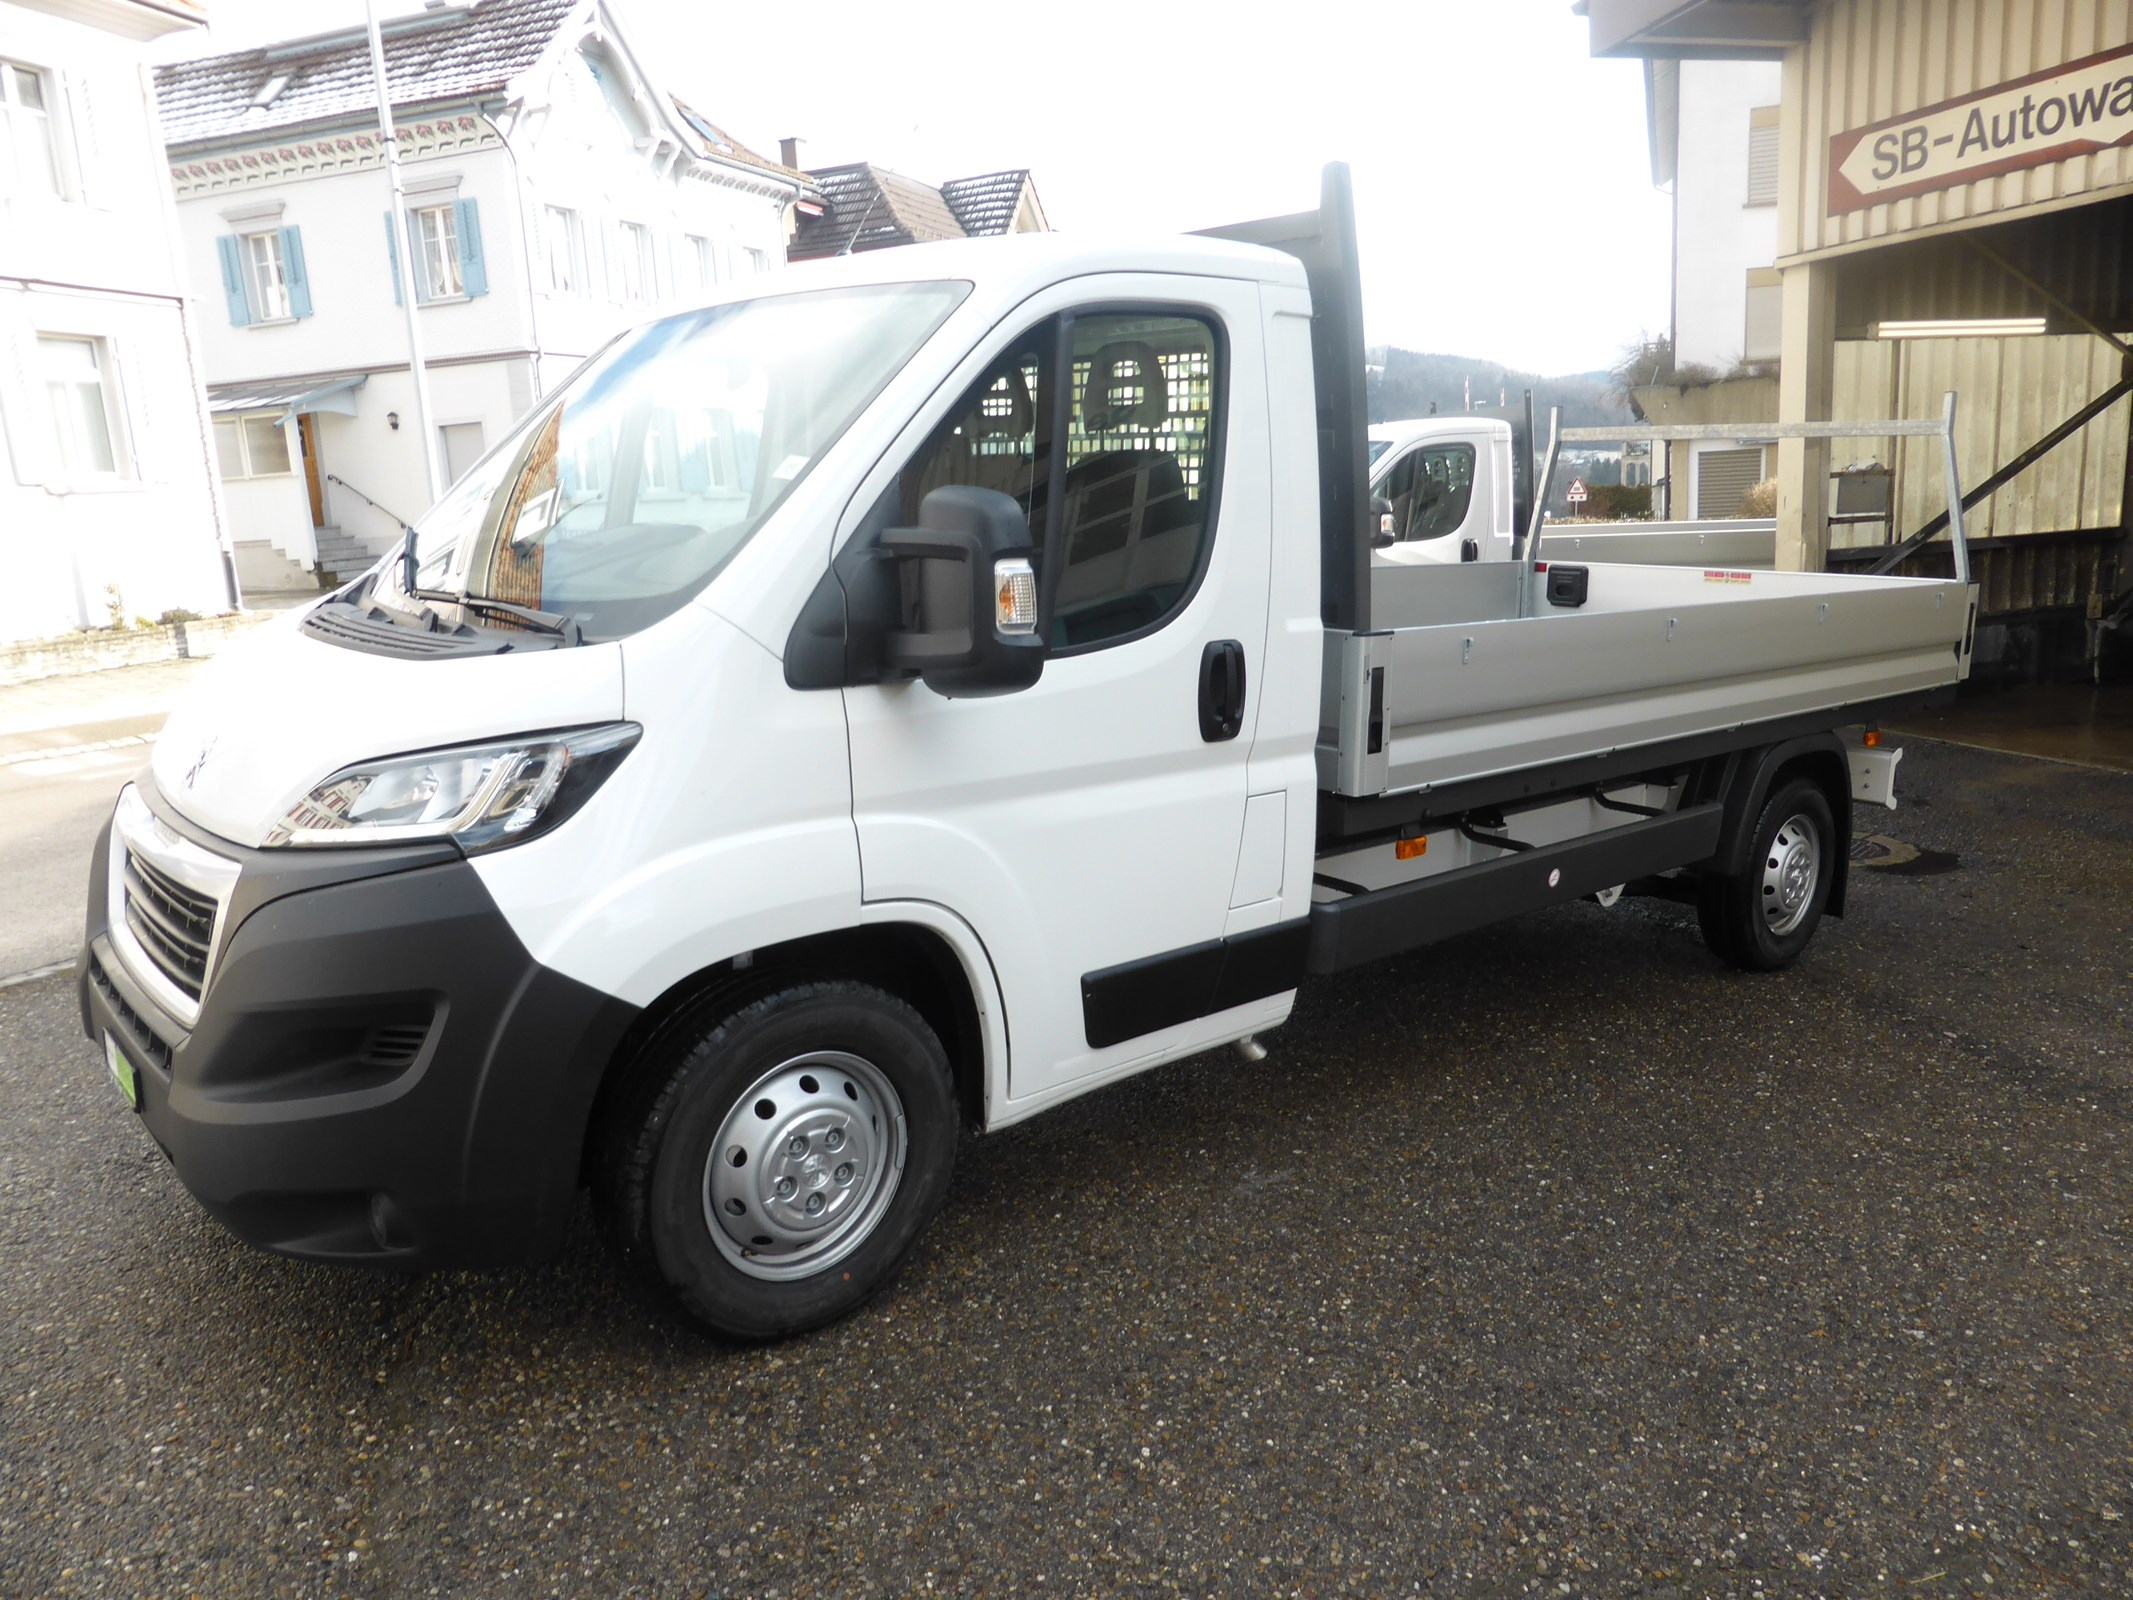 pickup Peugeot Boxer L3 Pritsche Mod 2020 140 Ps.Heavy 3.5 To Ahk!!!!